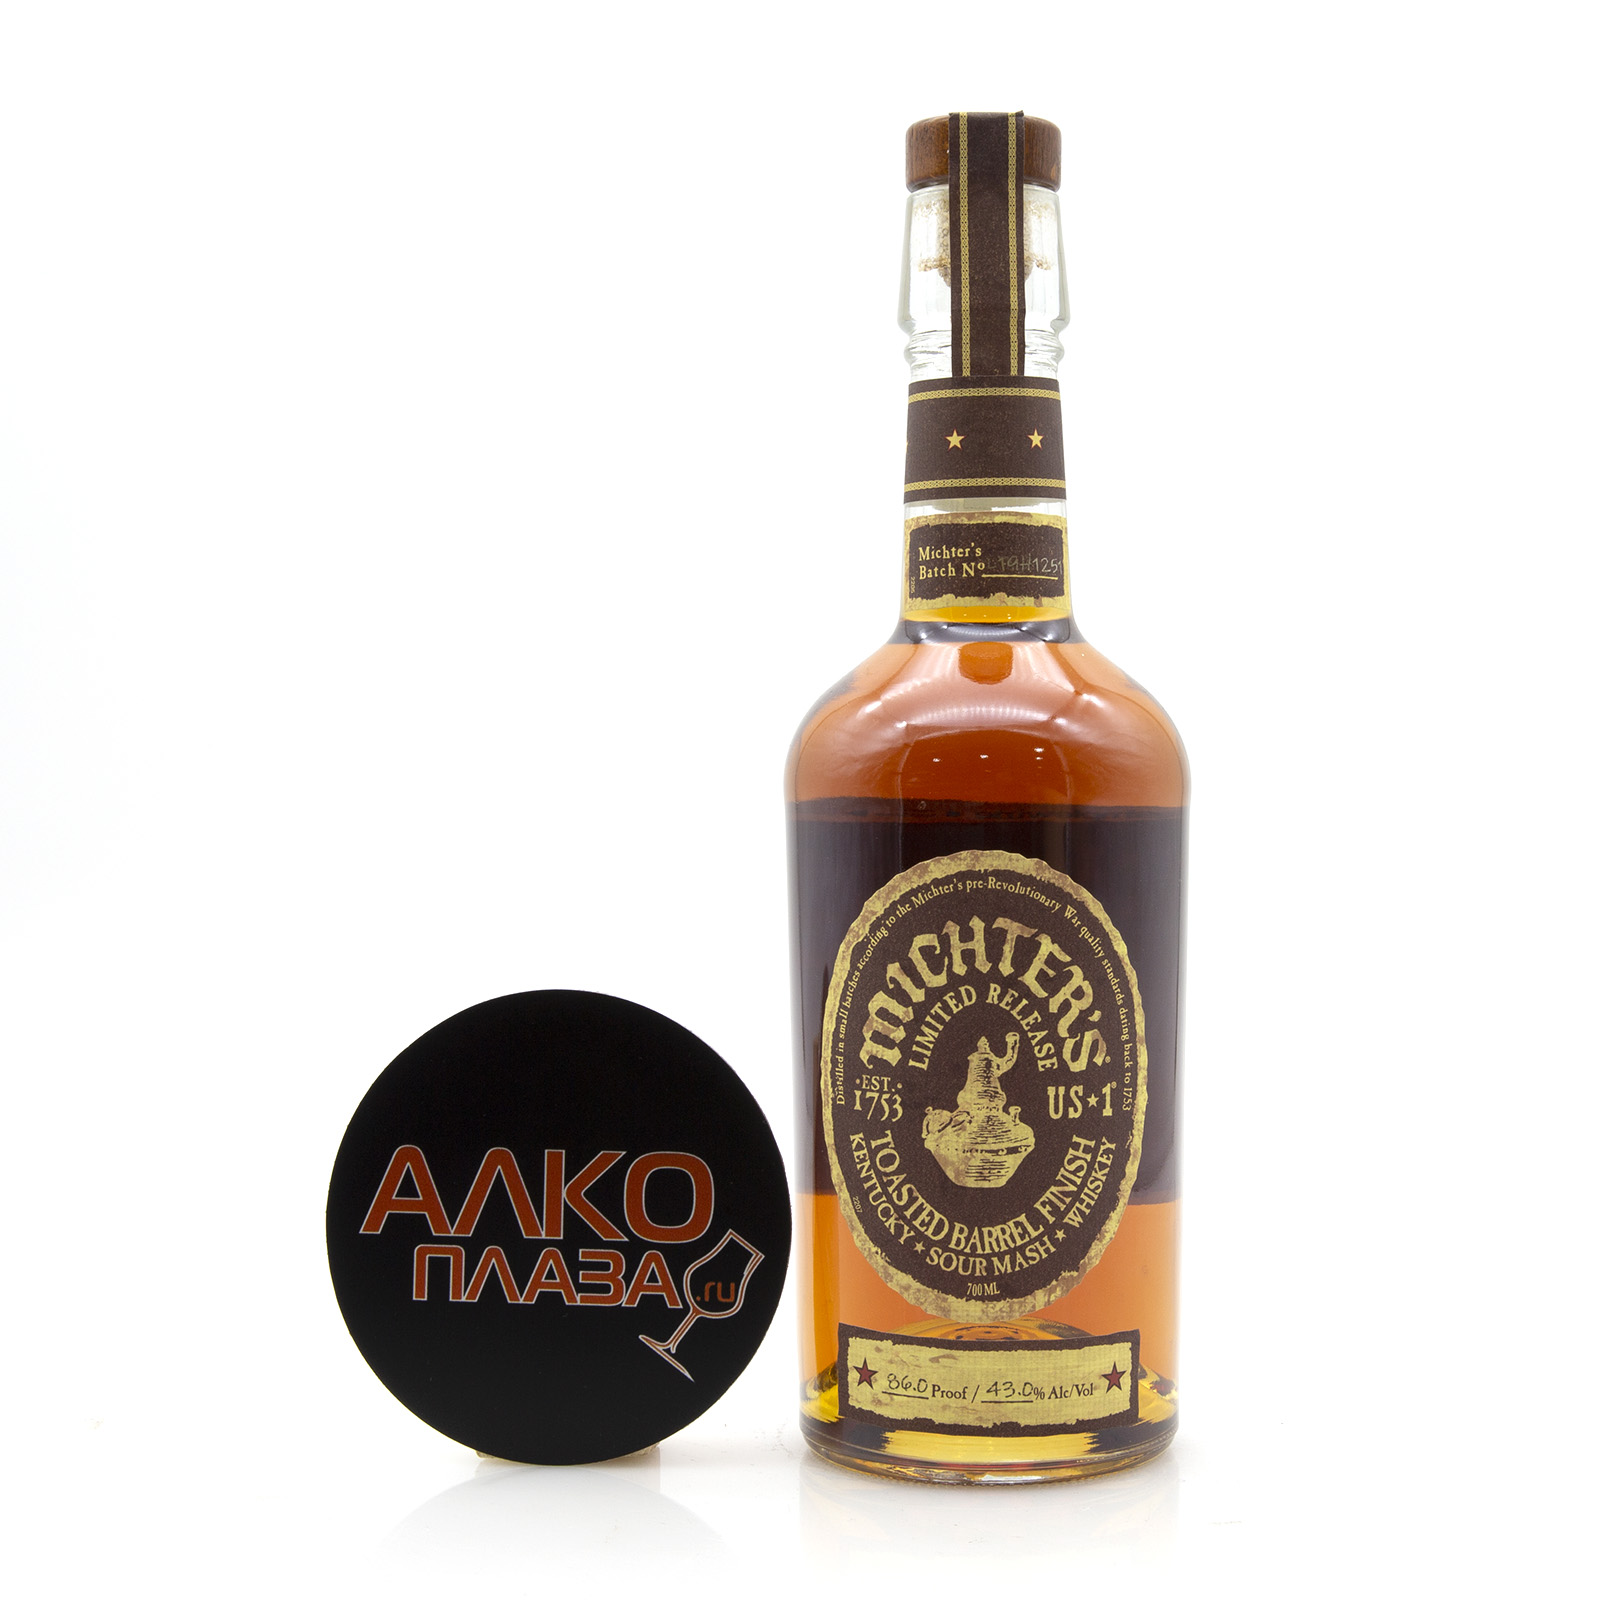 Michters Toasted Barrel Sour Mash - виски Миктерс Тостед Баррел Сауэр Мэш  0.7 л